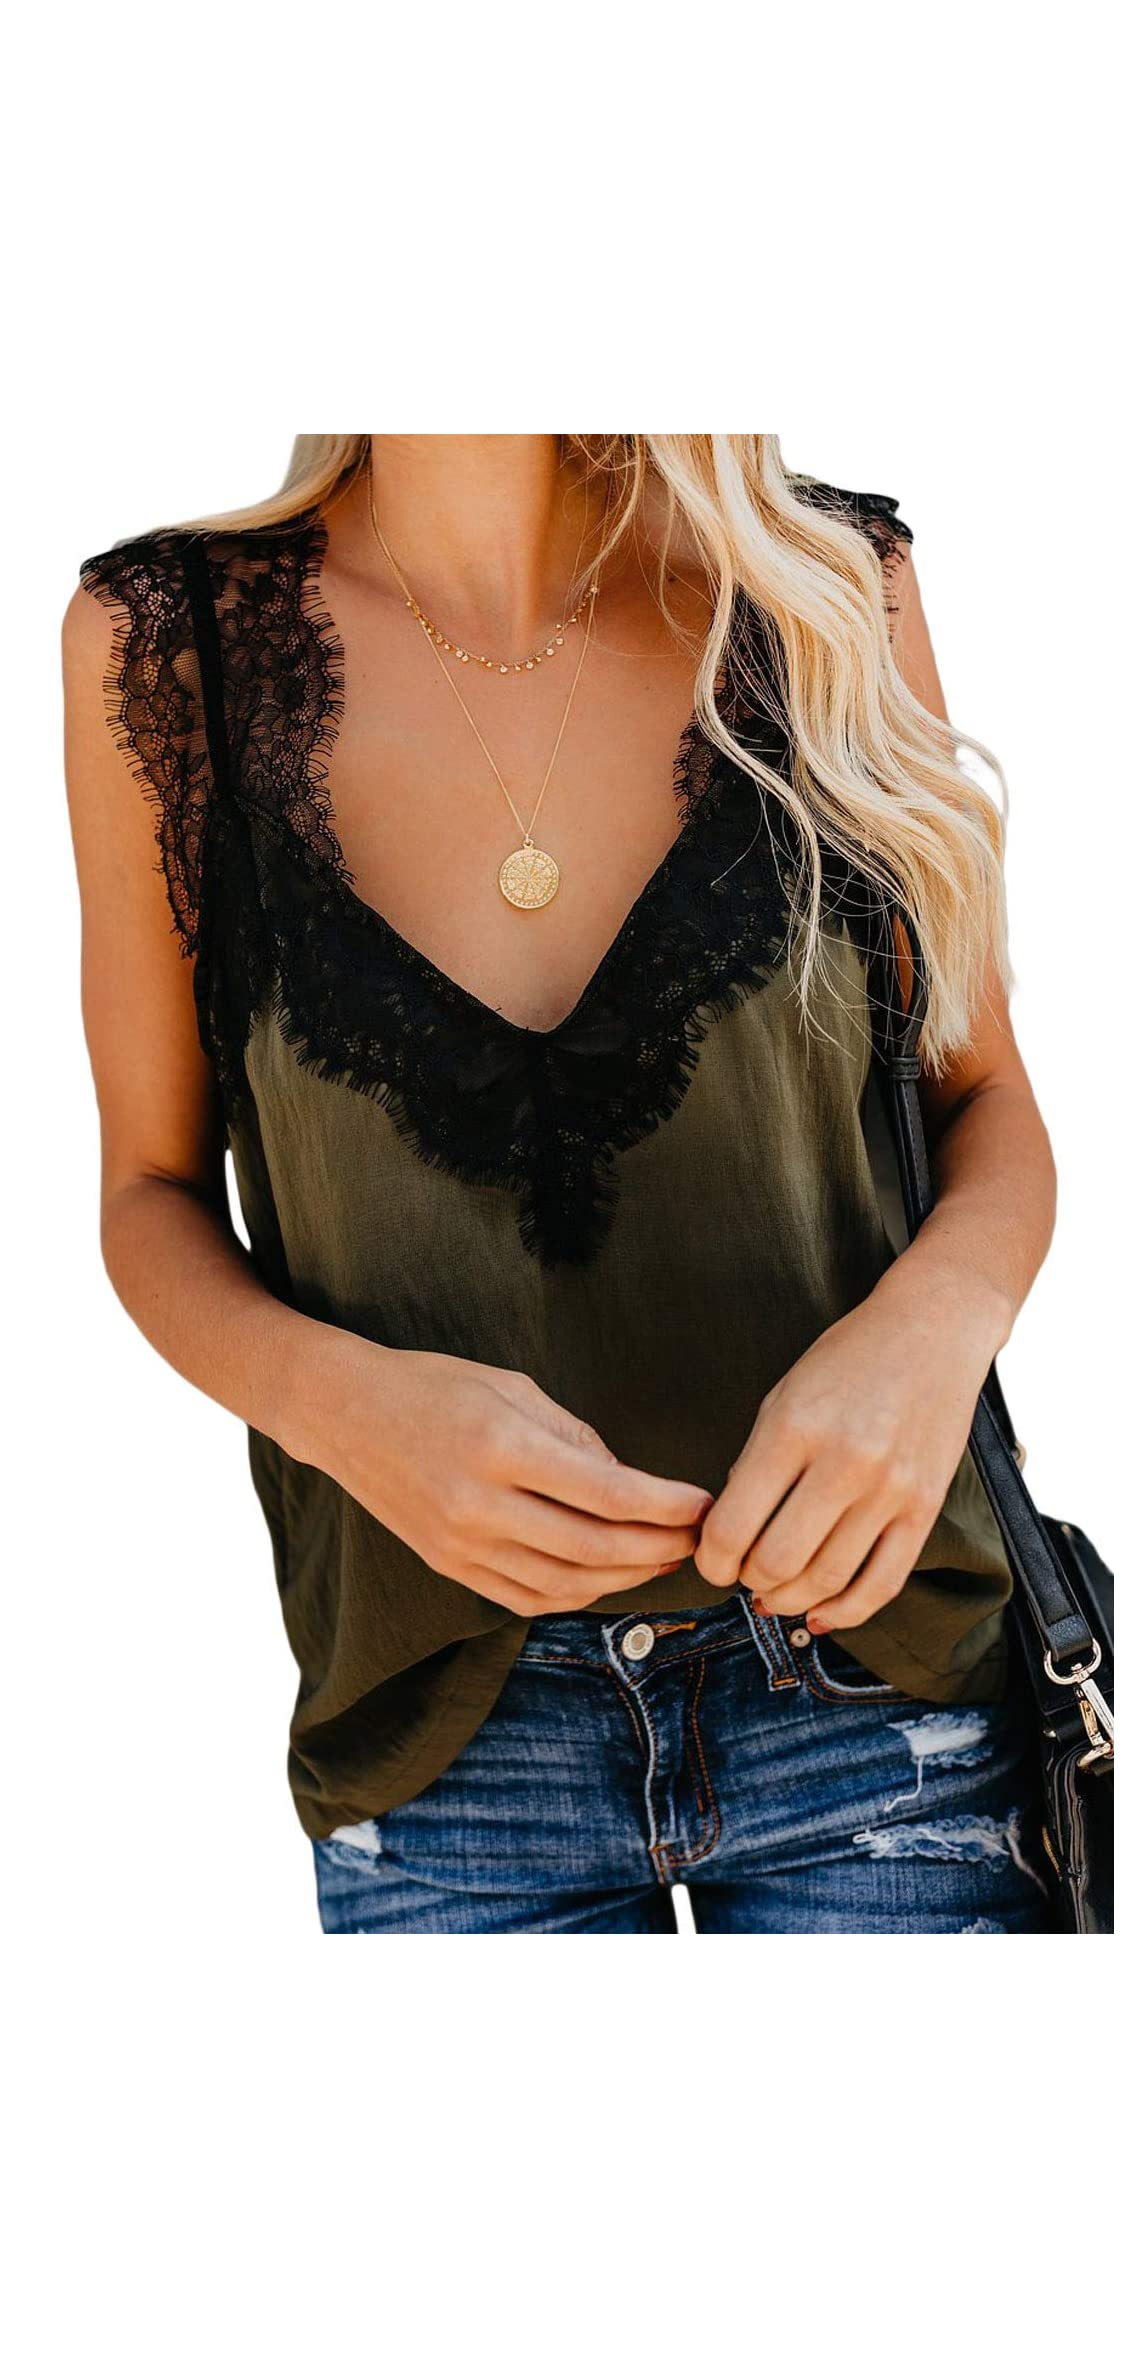 Women's V Neck Lace Trim Camisole Removable Racer